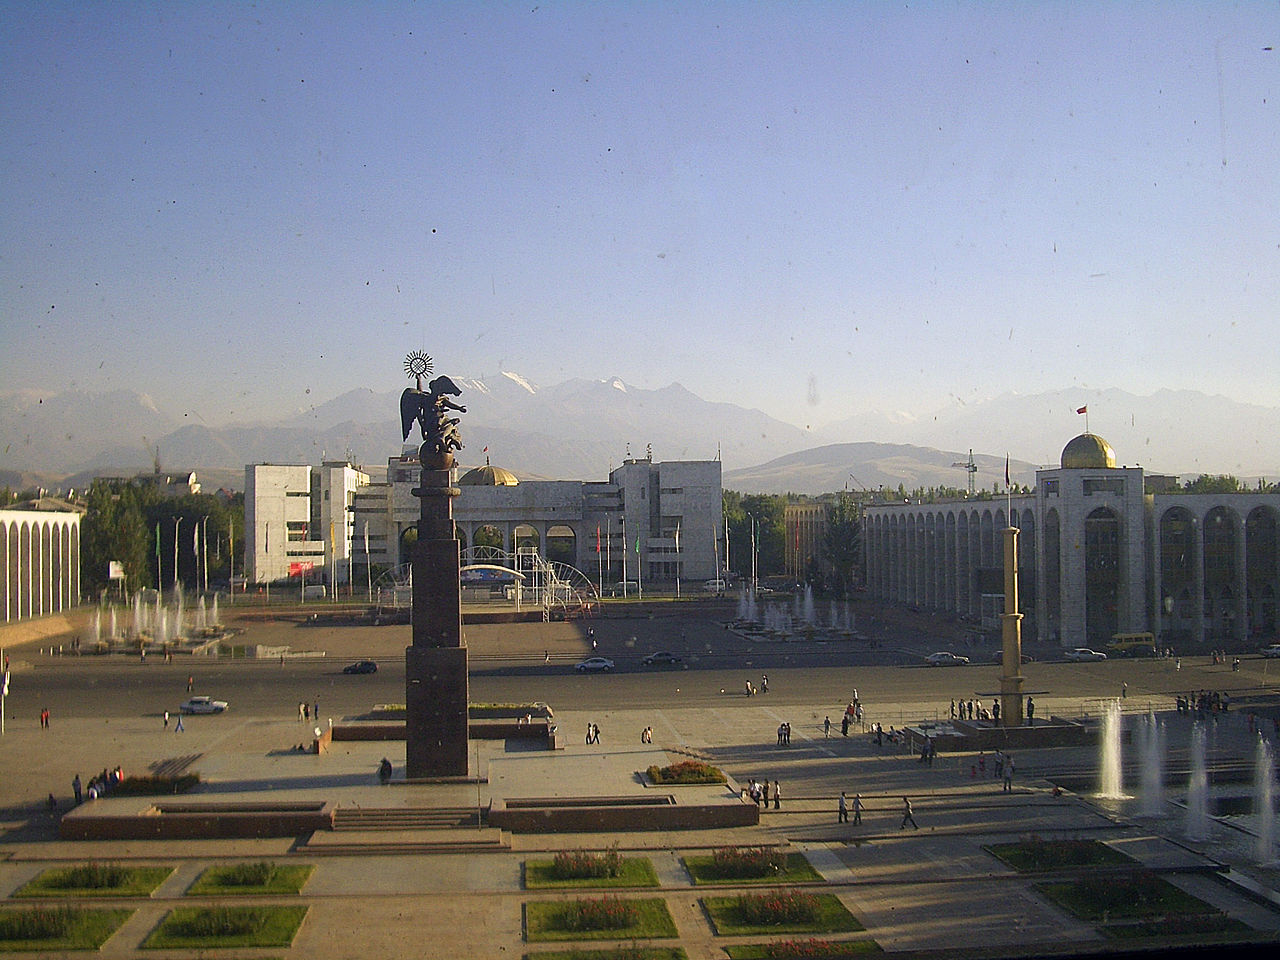 Kyrgyzstan and the Eurasian Economic Union: The view from Bishkek